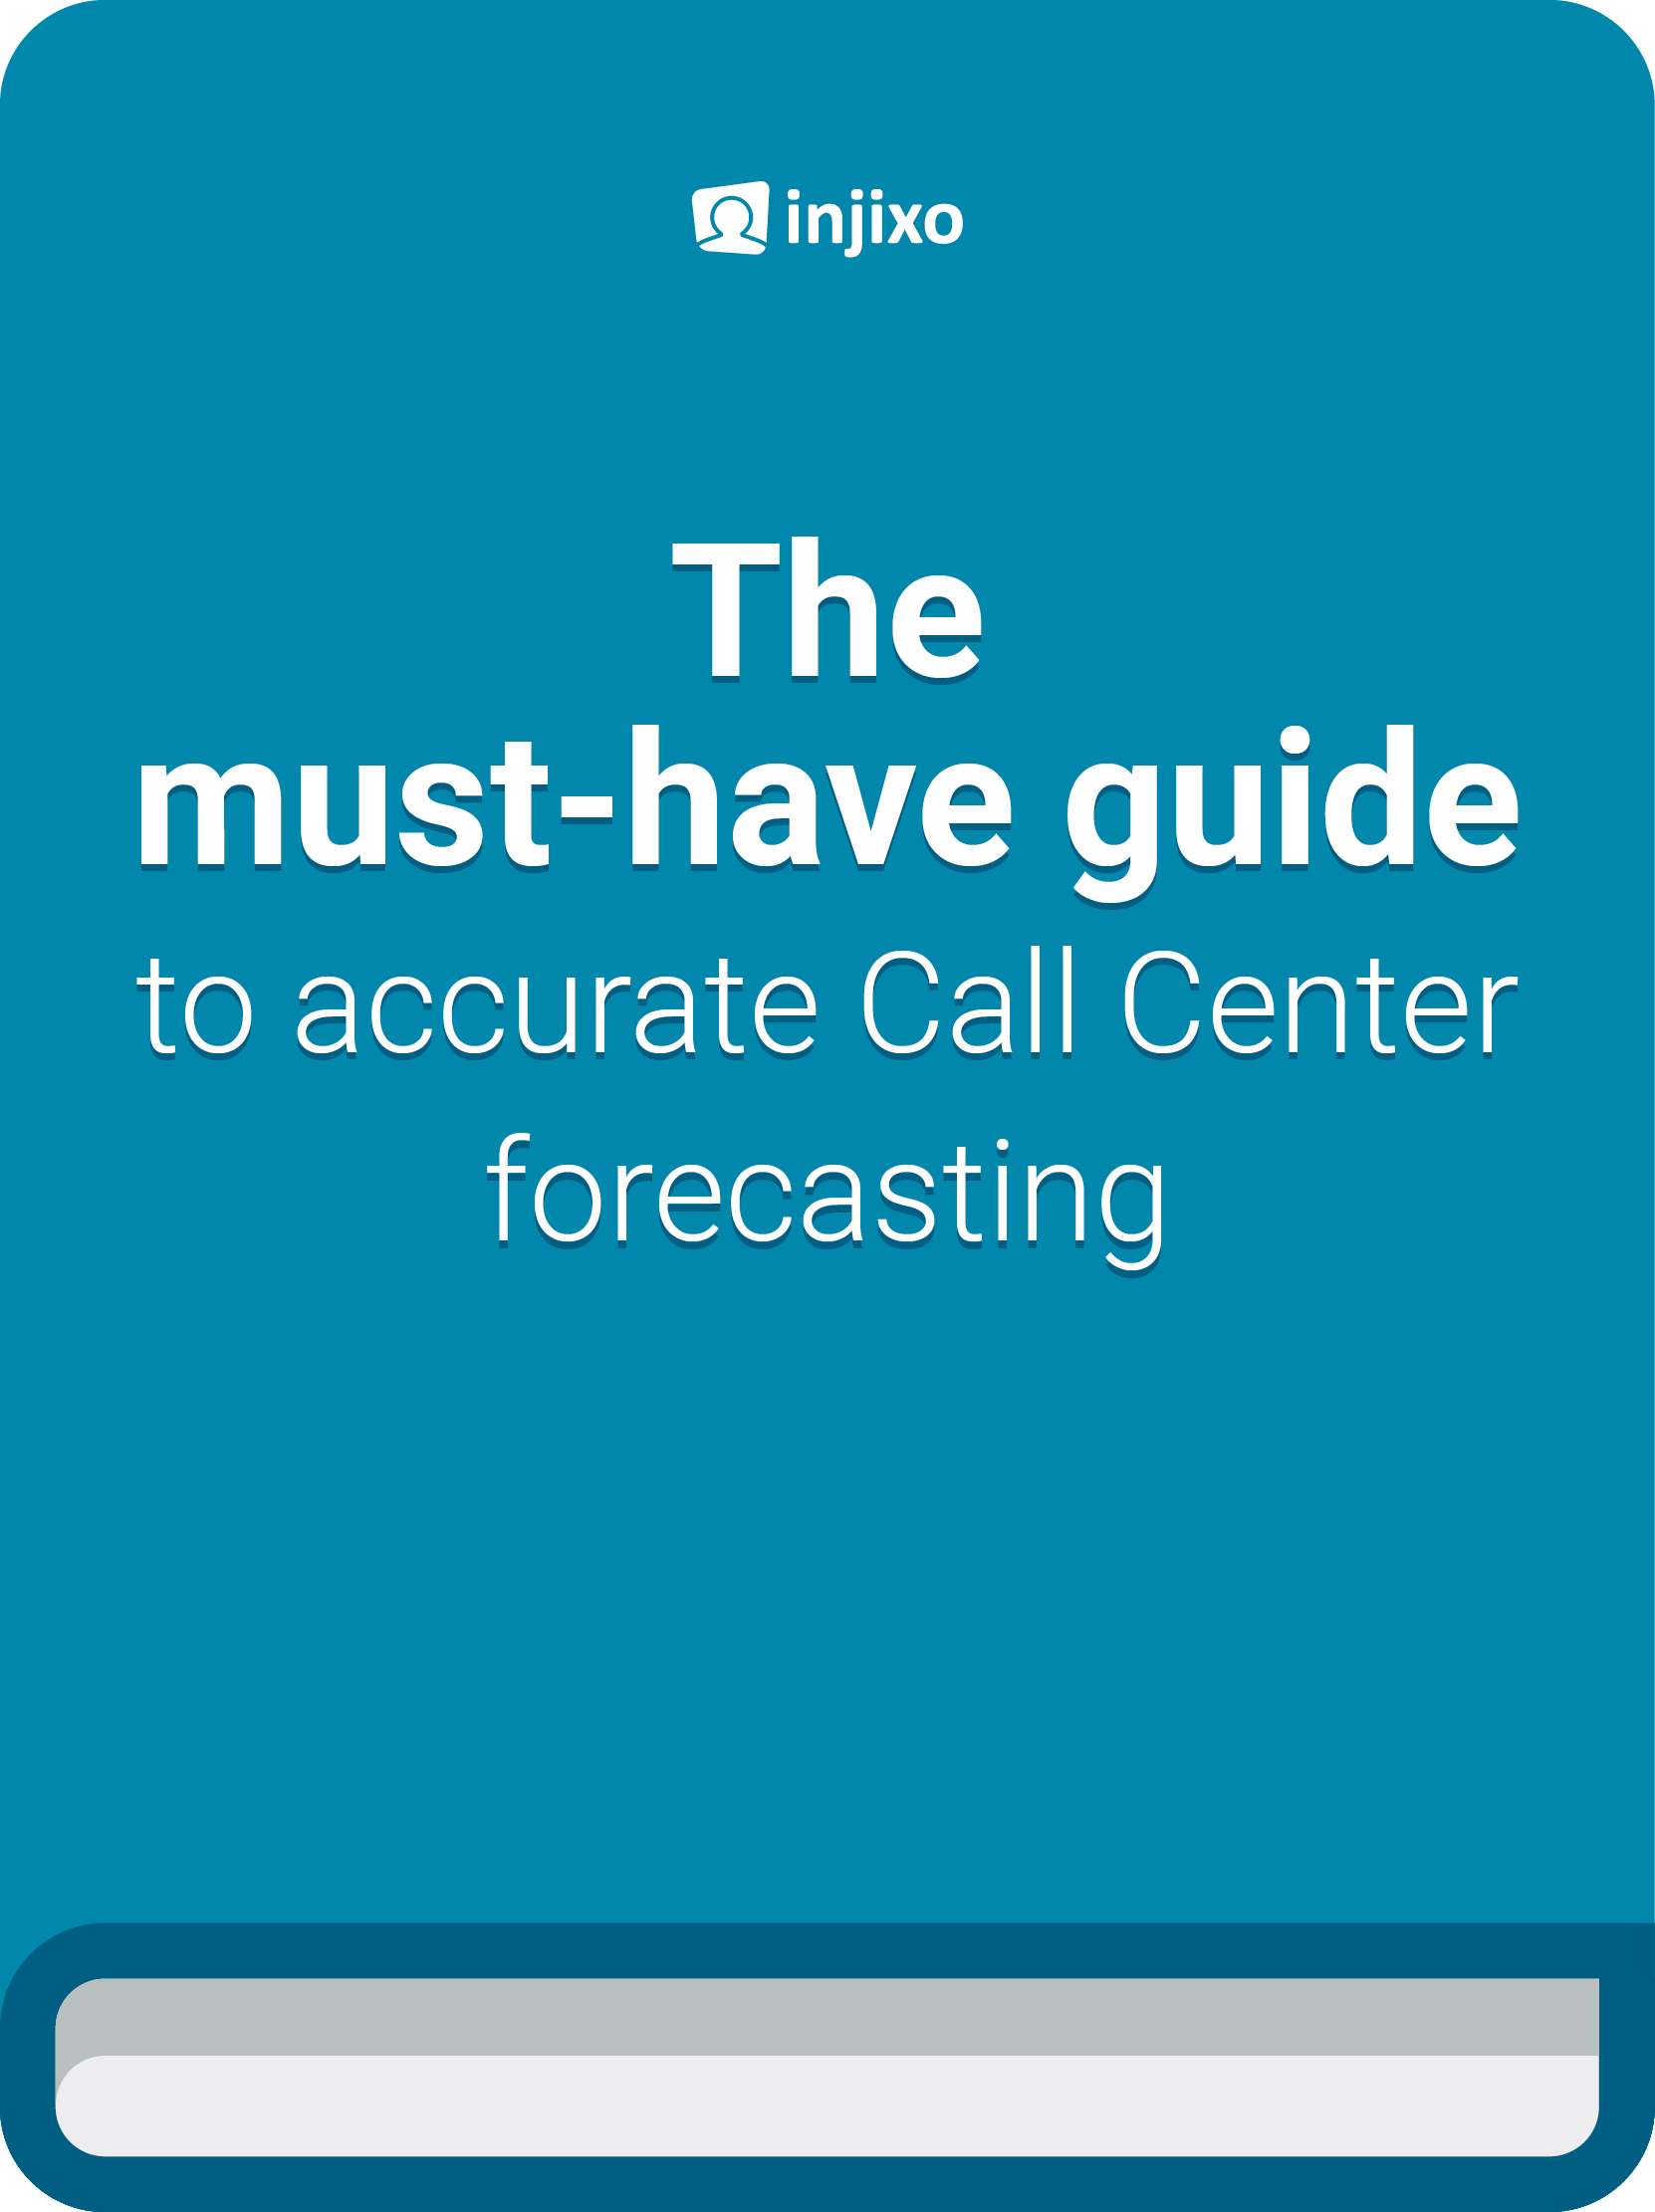 injixo-ebook-the-must-have-guide-to-accurate-call-center-forecasting-cover